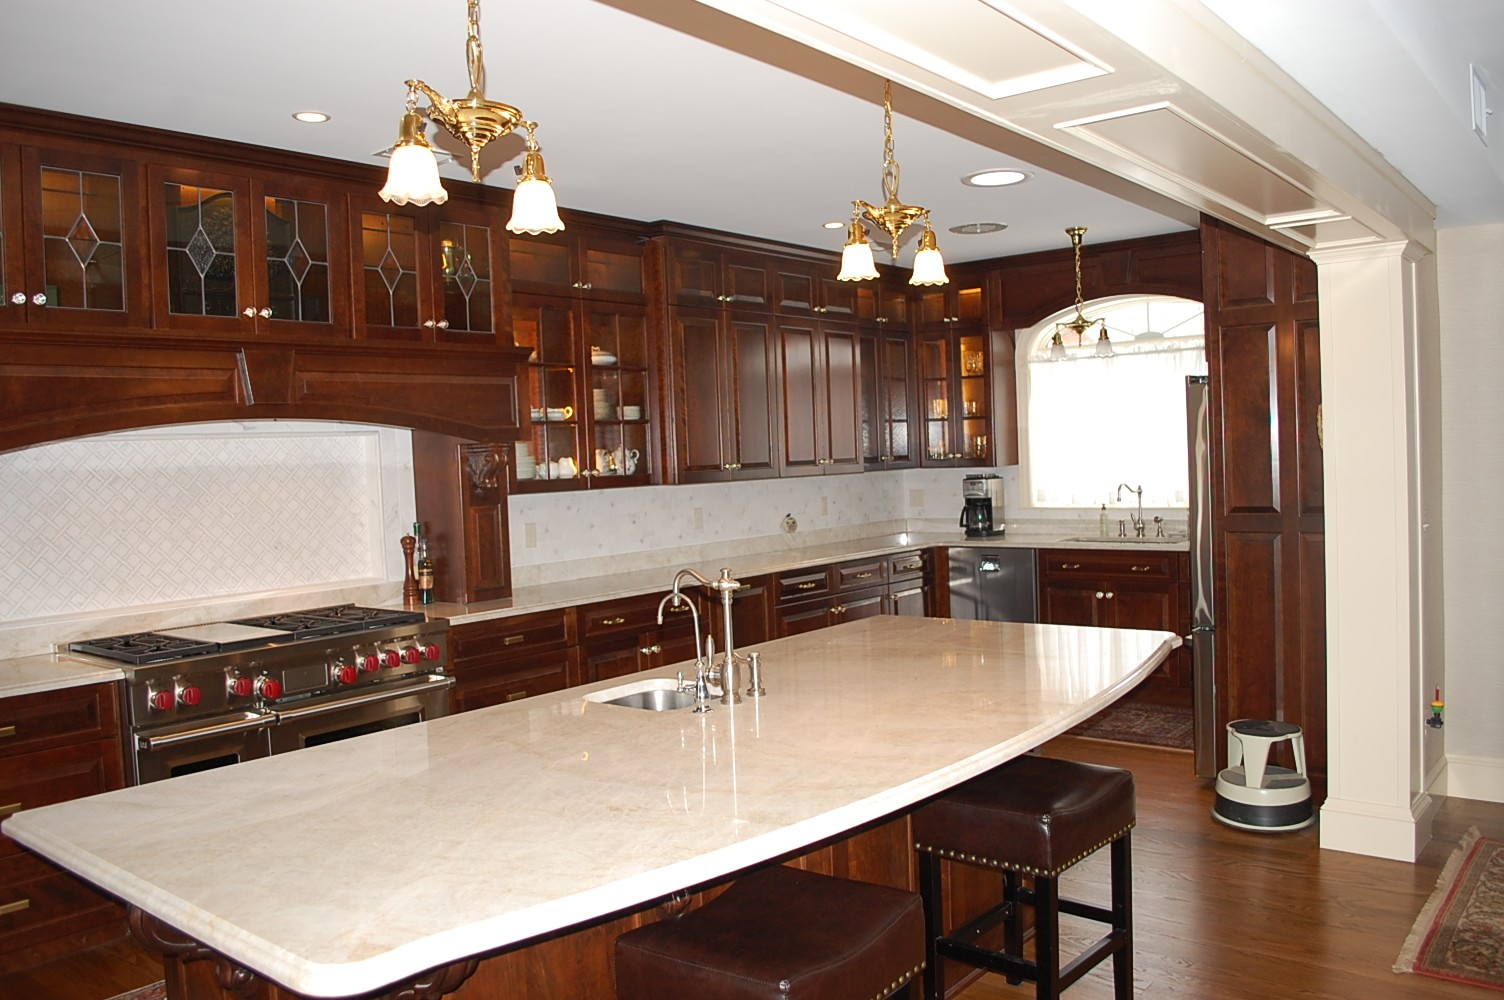 Custom Kitchen renovation in Hagerstown, MD